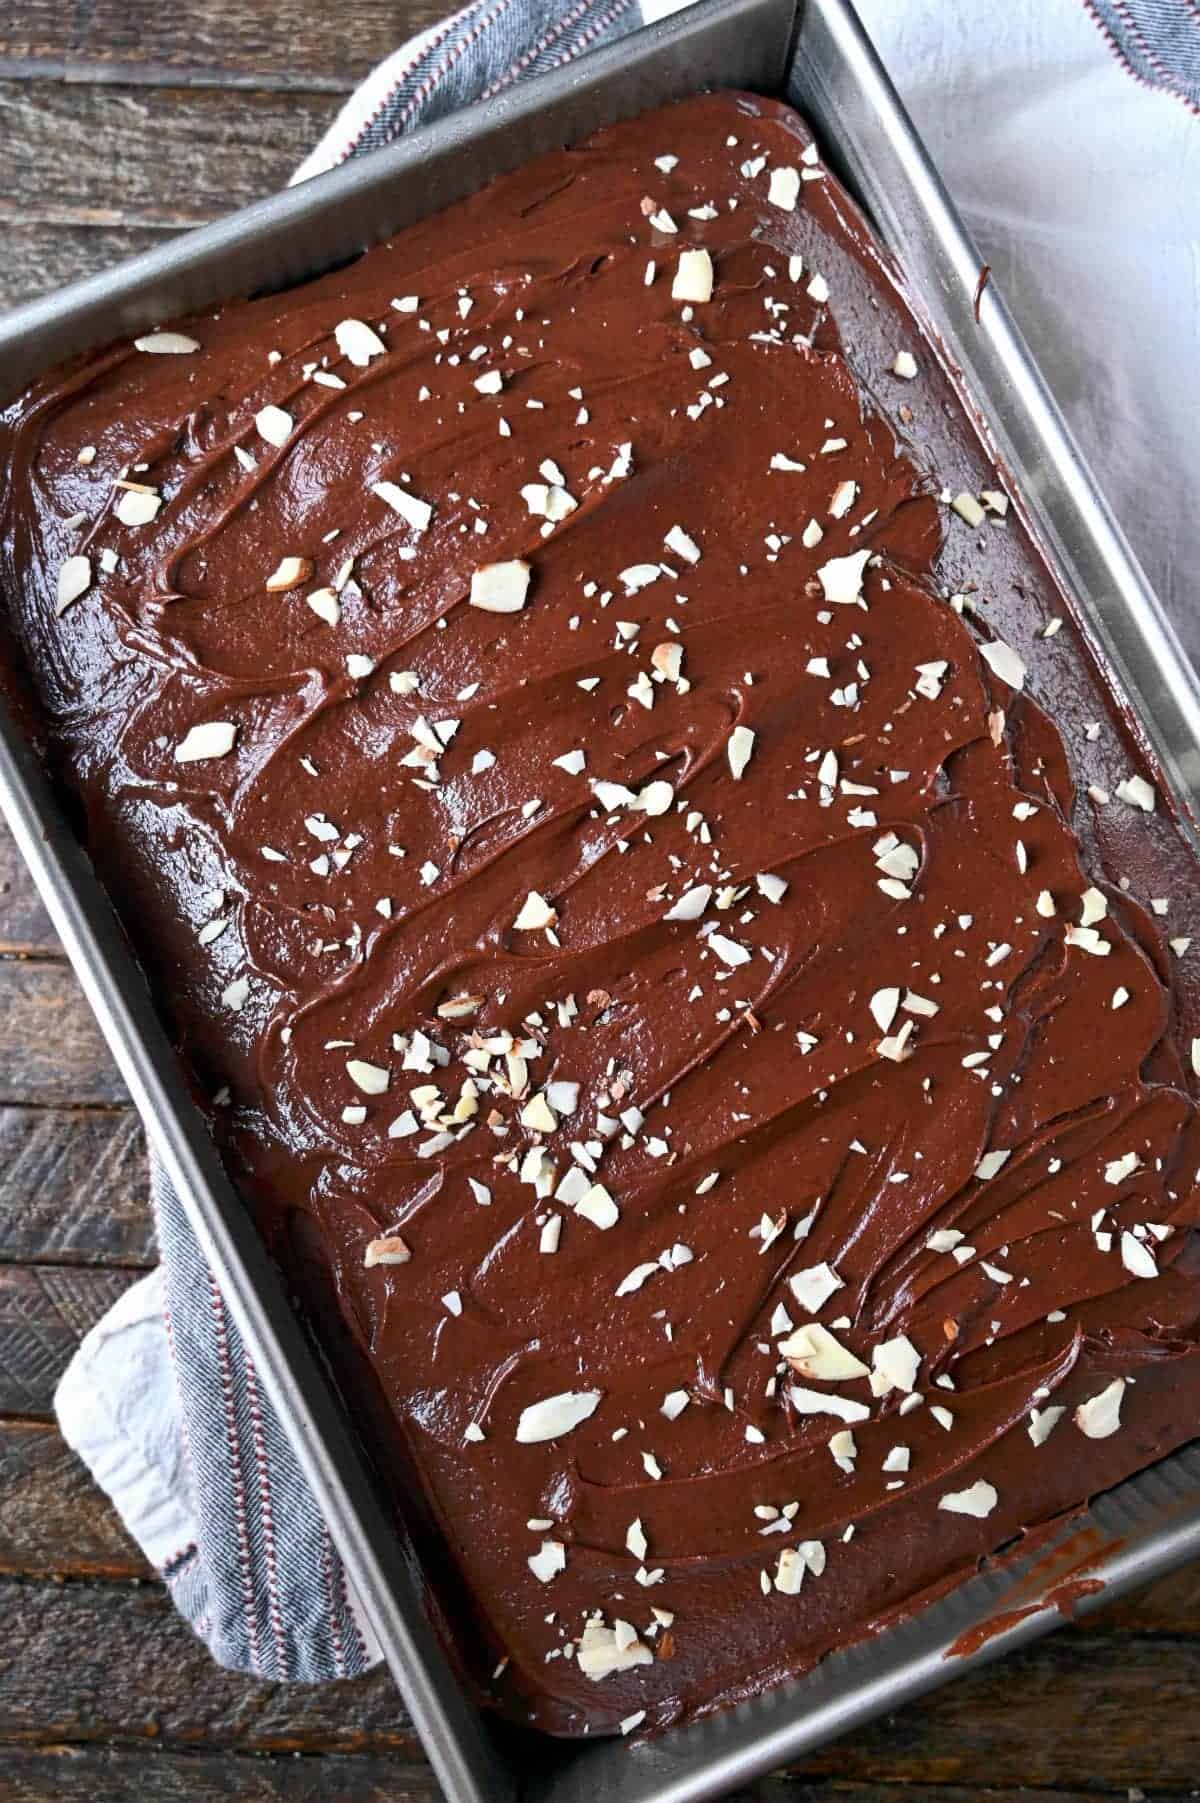 Chocolate mayonnaise cake in a 9x13 baking pan with chocolate frosting and slivered almonds on top.